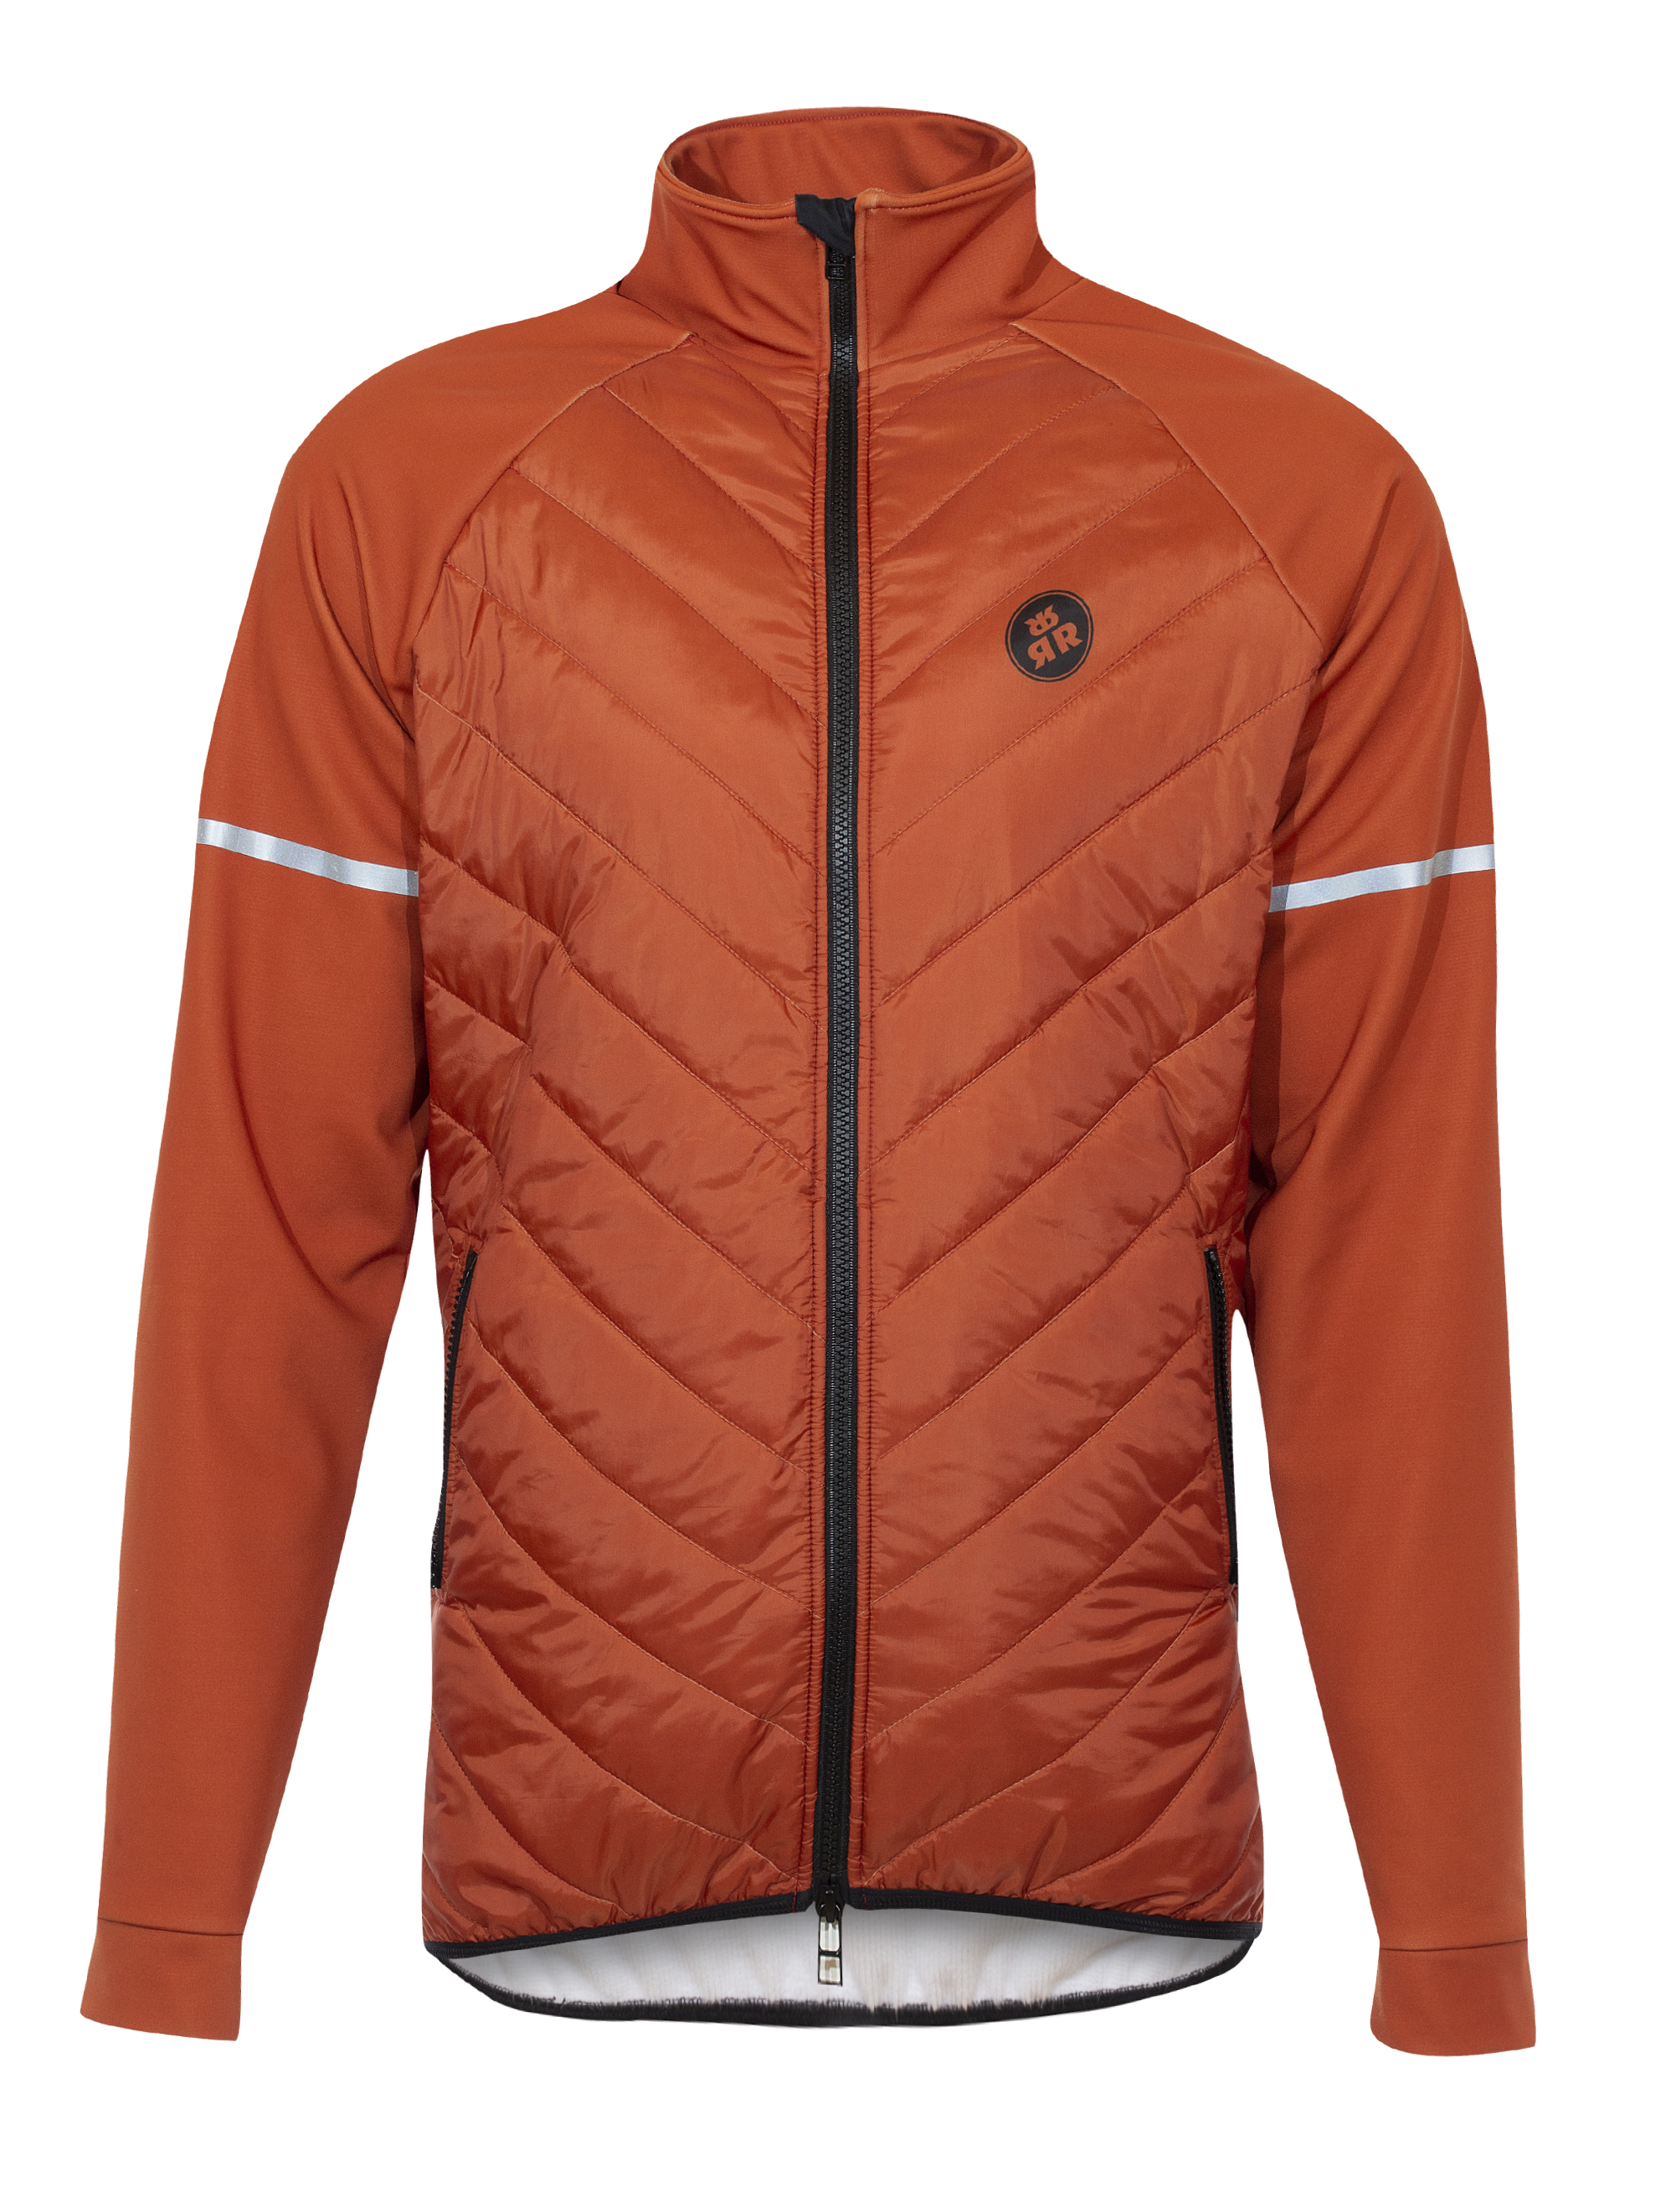 Multisport-Step-Winterjacke in Wunschfarbe / RRT127M